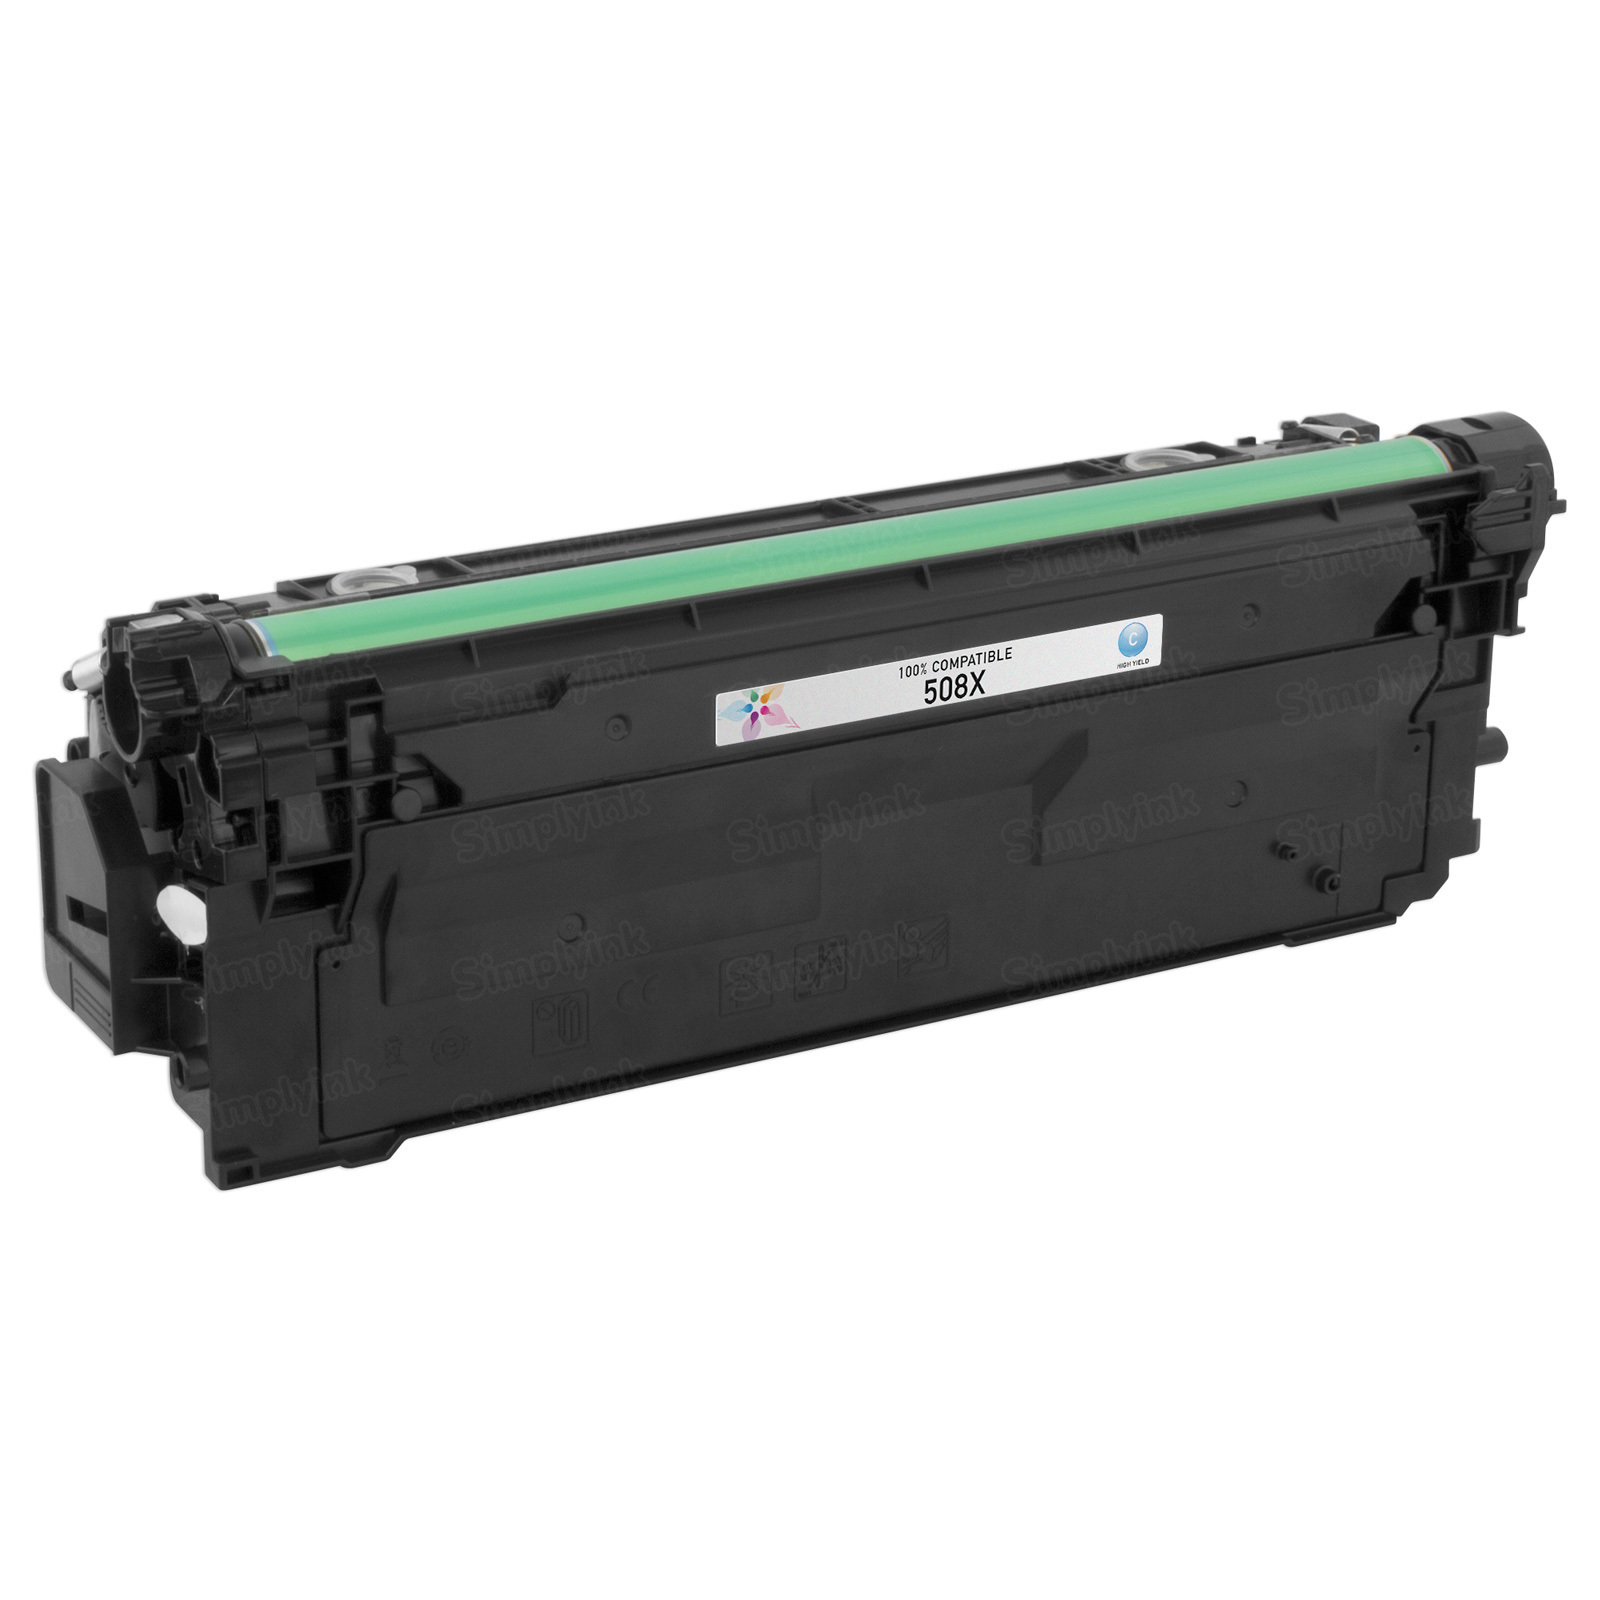 Replacement HY Cyan Toner for HP 508X